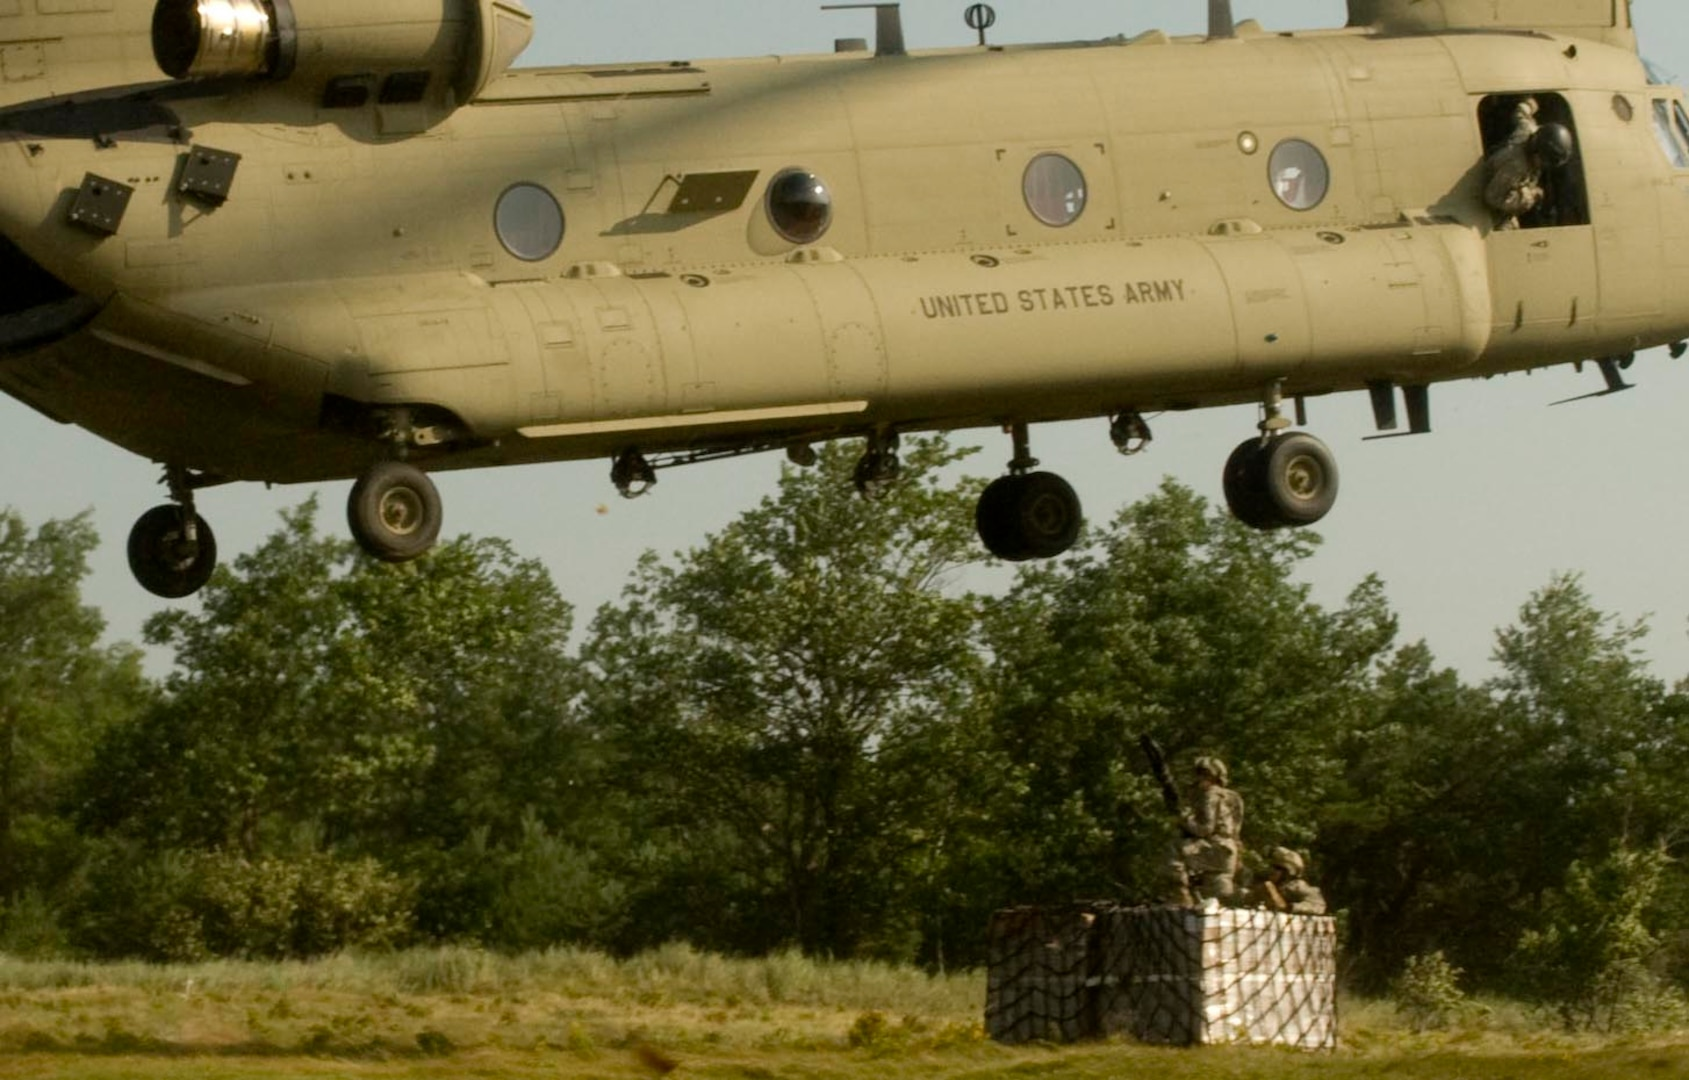 Two New York Army National Guard Soldiers from Company A, 427th Brigade Support Battalion, prepare to attach a sling-load to a CH-47 Chinook helicopter piloted by aviators from Company B, 3rd Battalion, 126th Aviation, July 19, 2015. The Soldiers, part of the 27th IBCT are at Fort Drum participating in an Exportable Combat Training Capability exercise in preparation of the Brigade's rotation at the Joint Readiness Training Center at Fort Polk, La., scheduled for 2016.